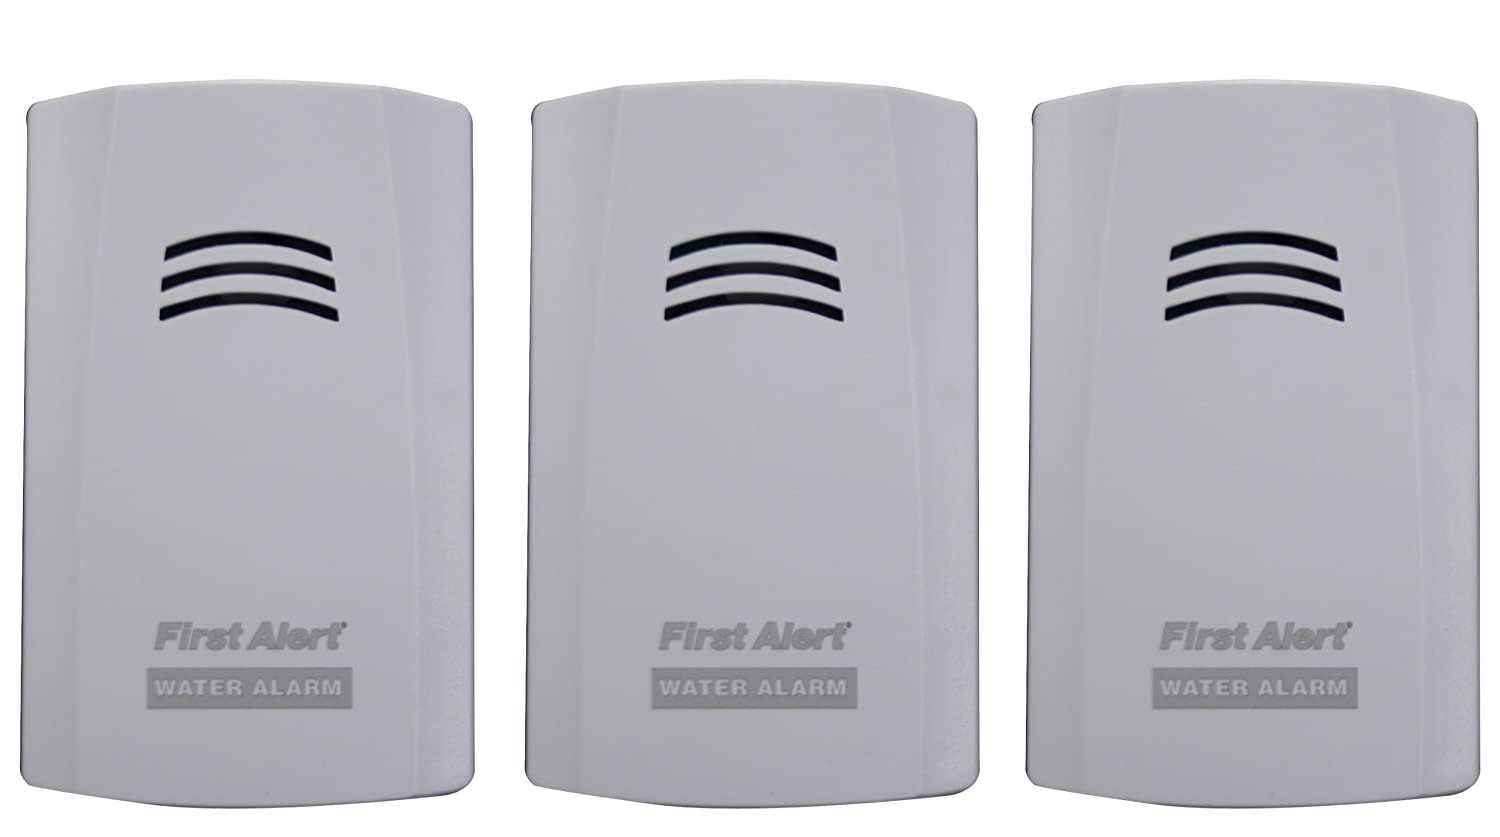 First Alert WA100 3 Water Alarm for Leak Detection and Flood Alerts 3 Pack